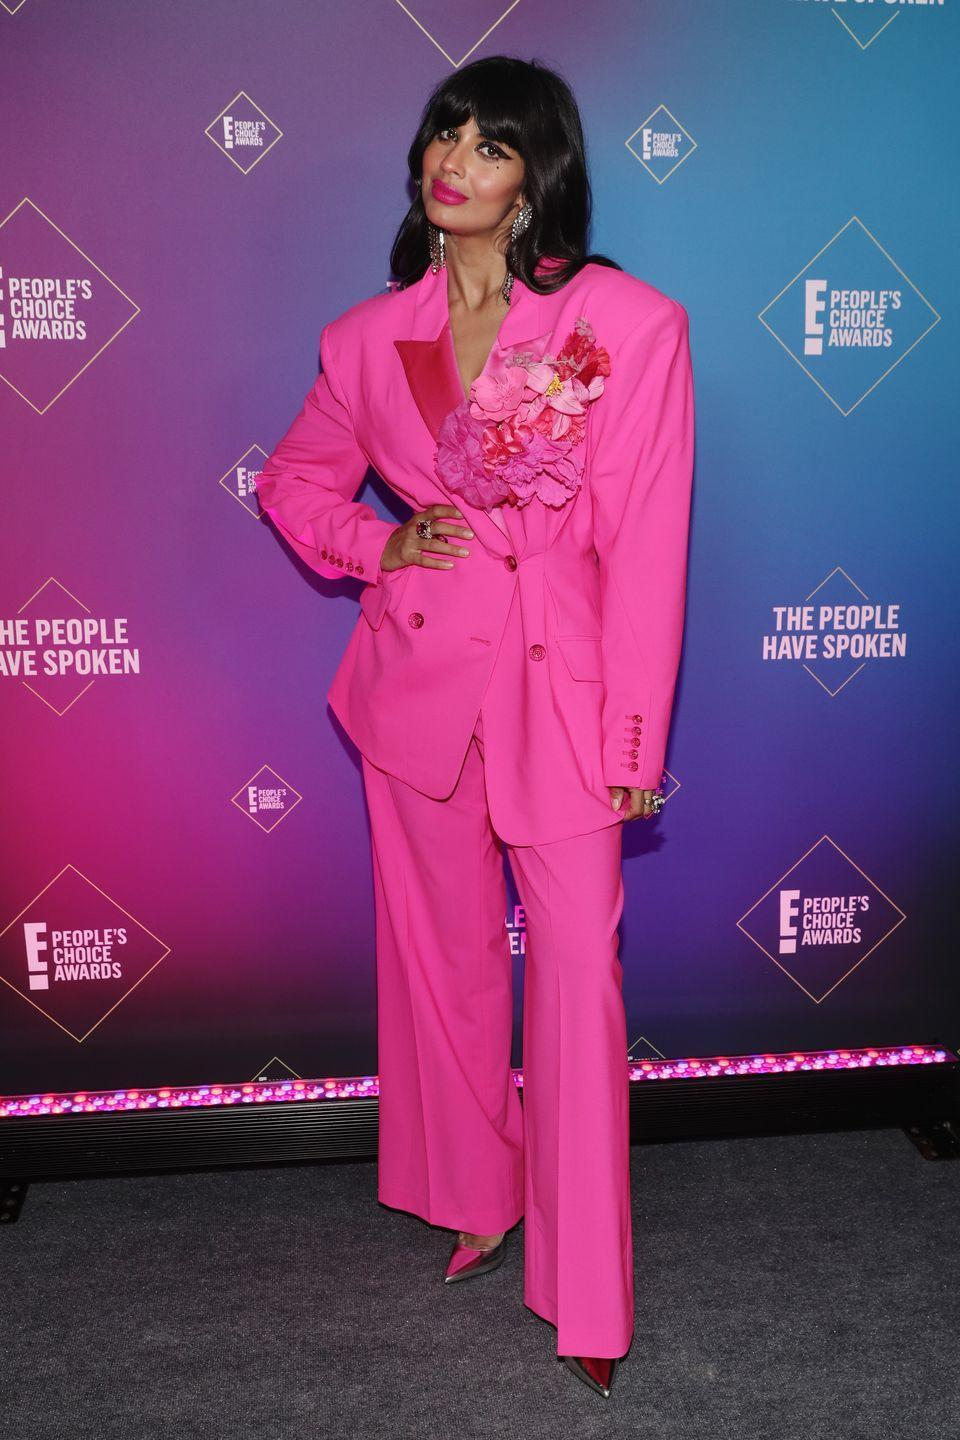 <p>Another actress to choose tailoring on the night was Jameela Jamil who wore an oversized bright pink blazer and trousers by Christopher John Rogers, complete with an enormous flower detail.</p>